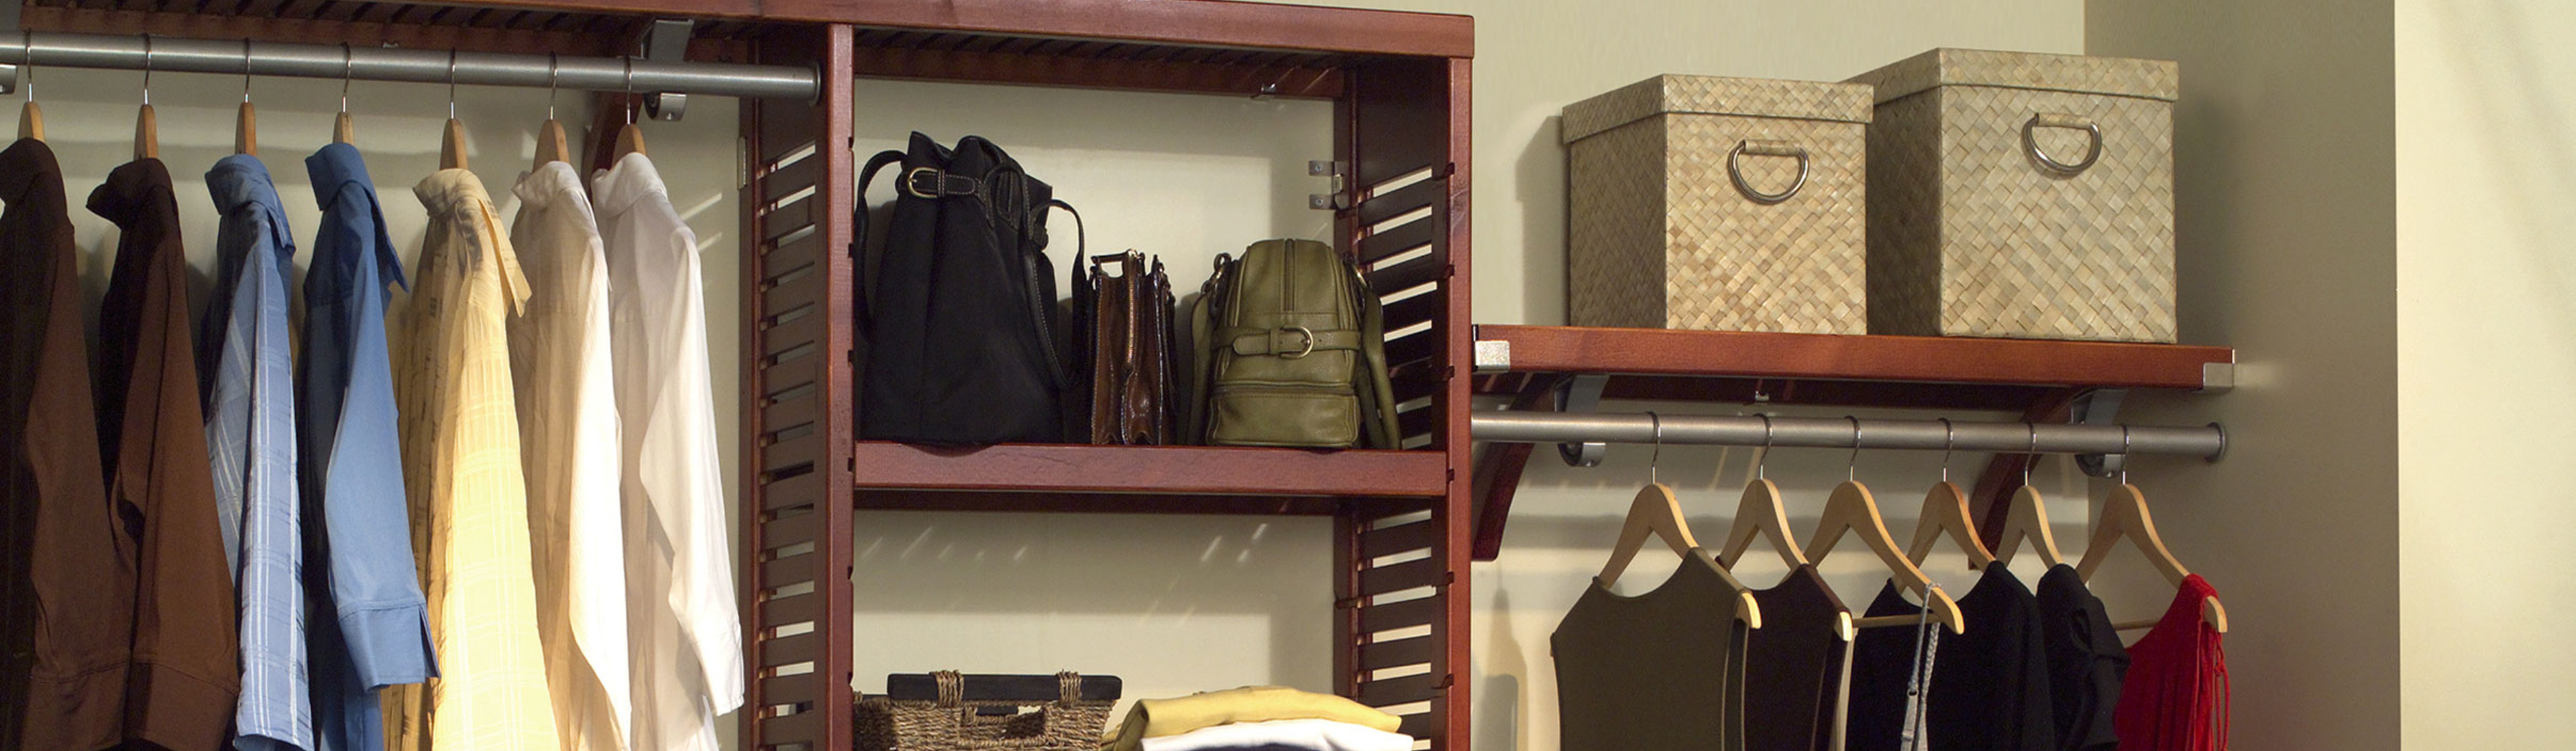 Life Hacks: How to Declutter Your Wardrobe